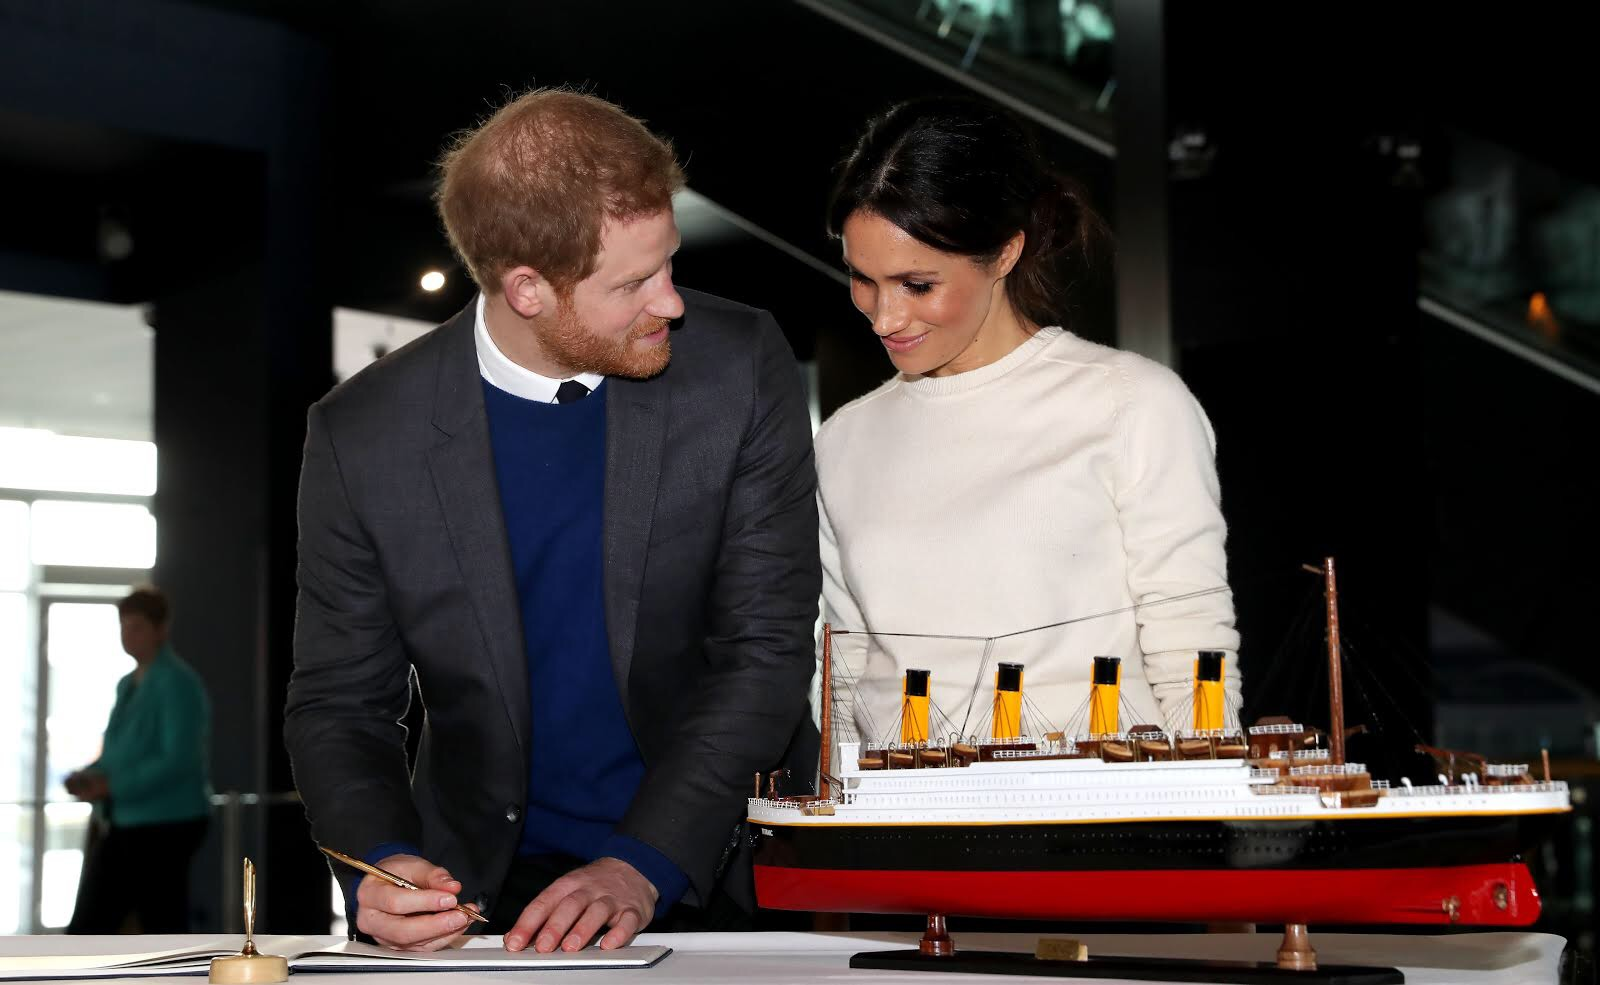 Prince_Harry_and_Ms._Markle_visit_Titanic_Belfast_40264182784